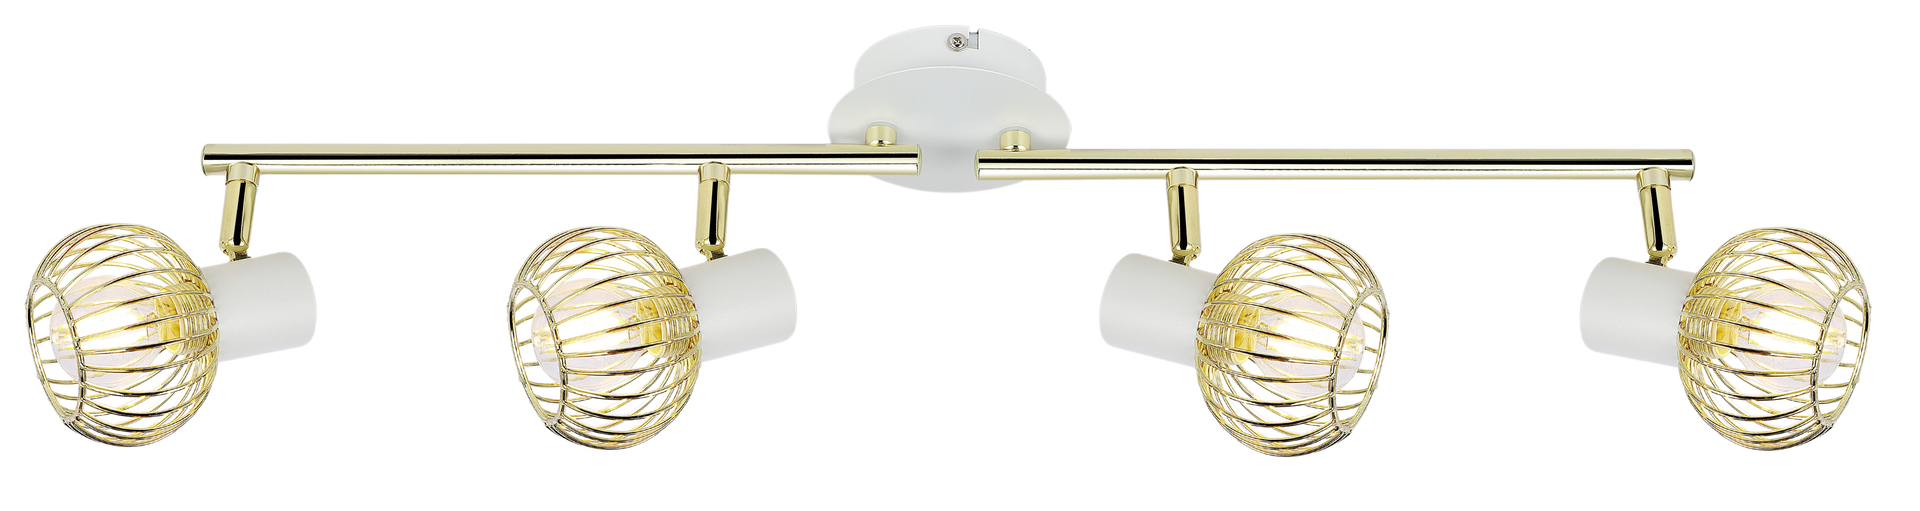 Oslo Ceiling Lamp Strip 4X40W E14 White / Gold